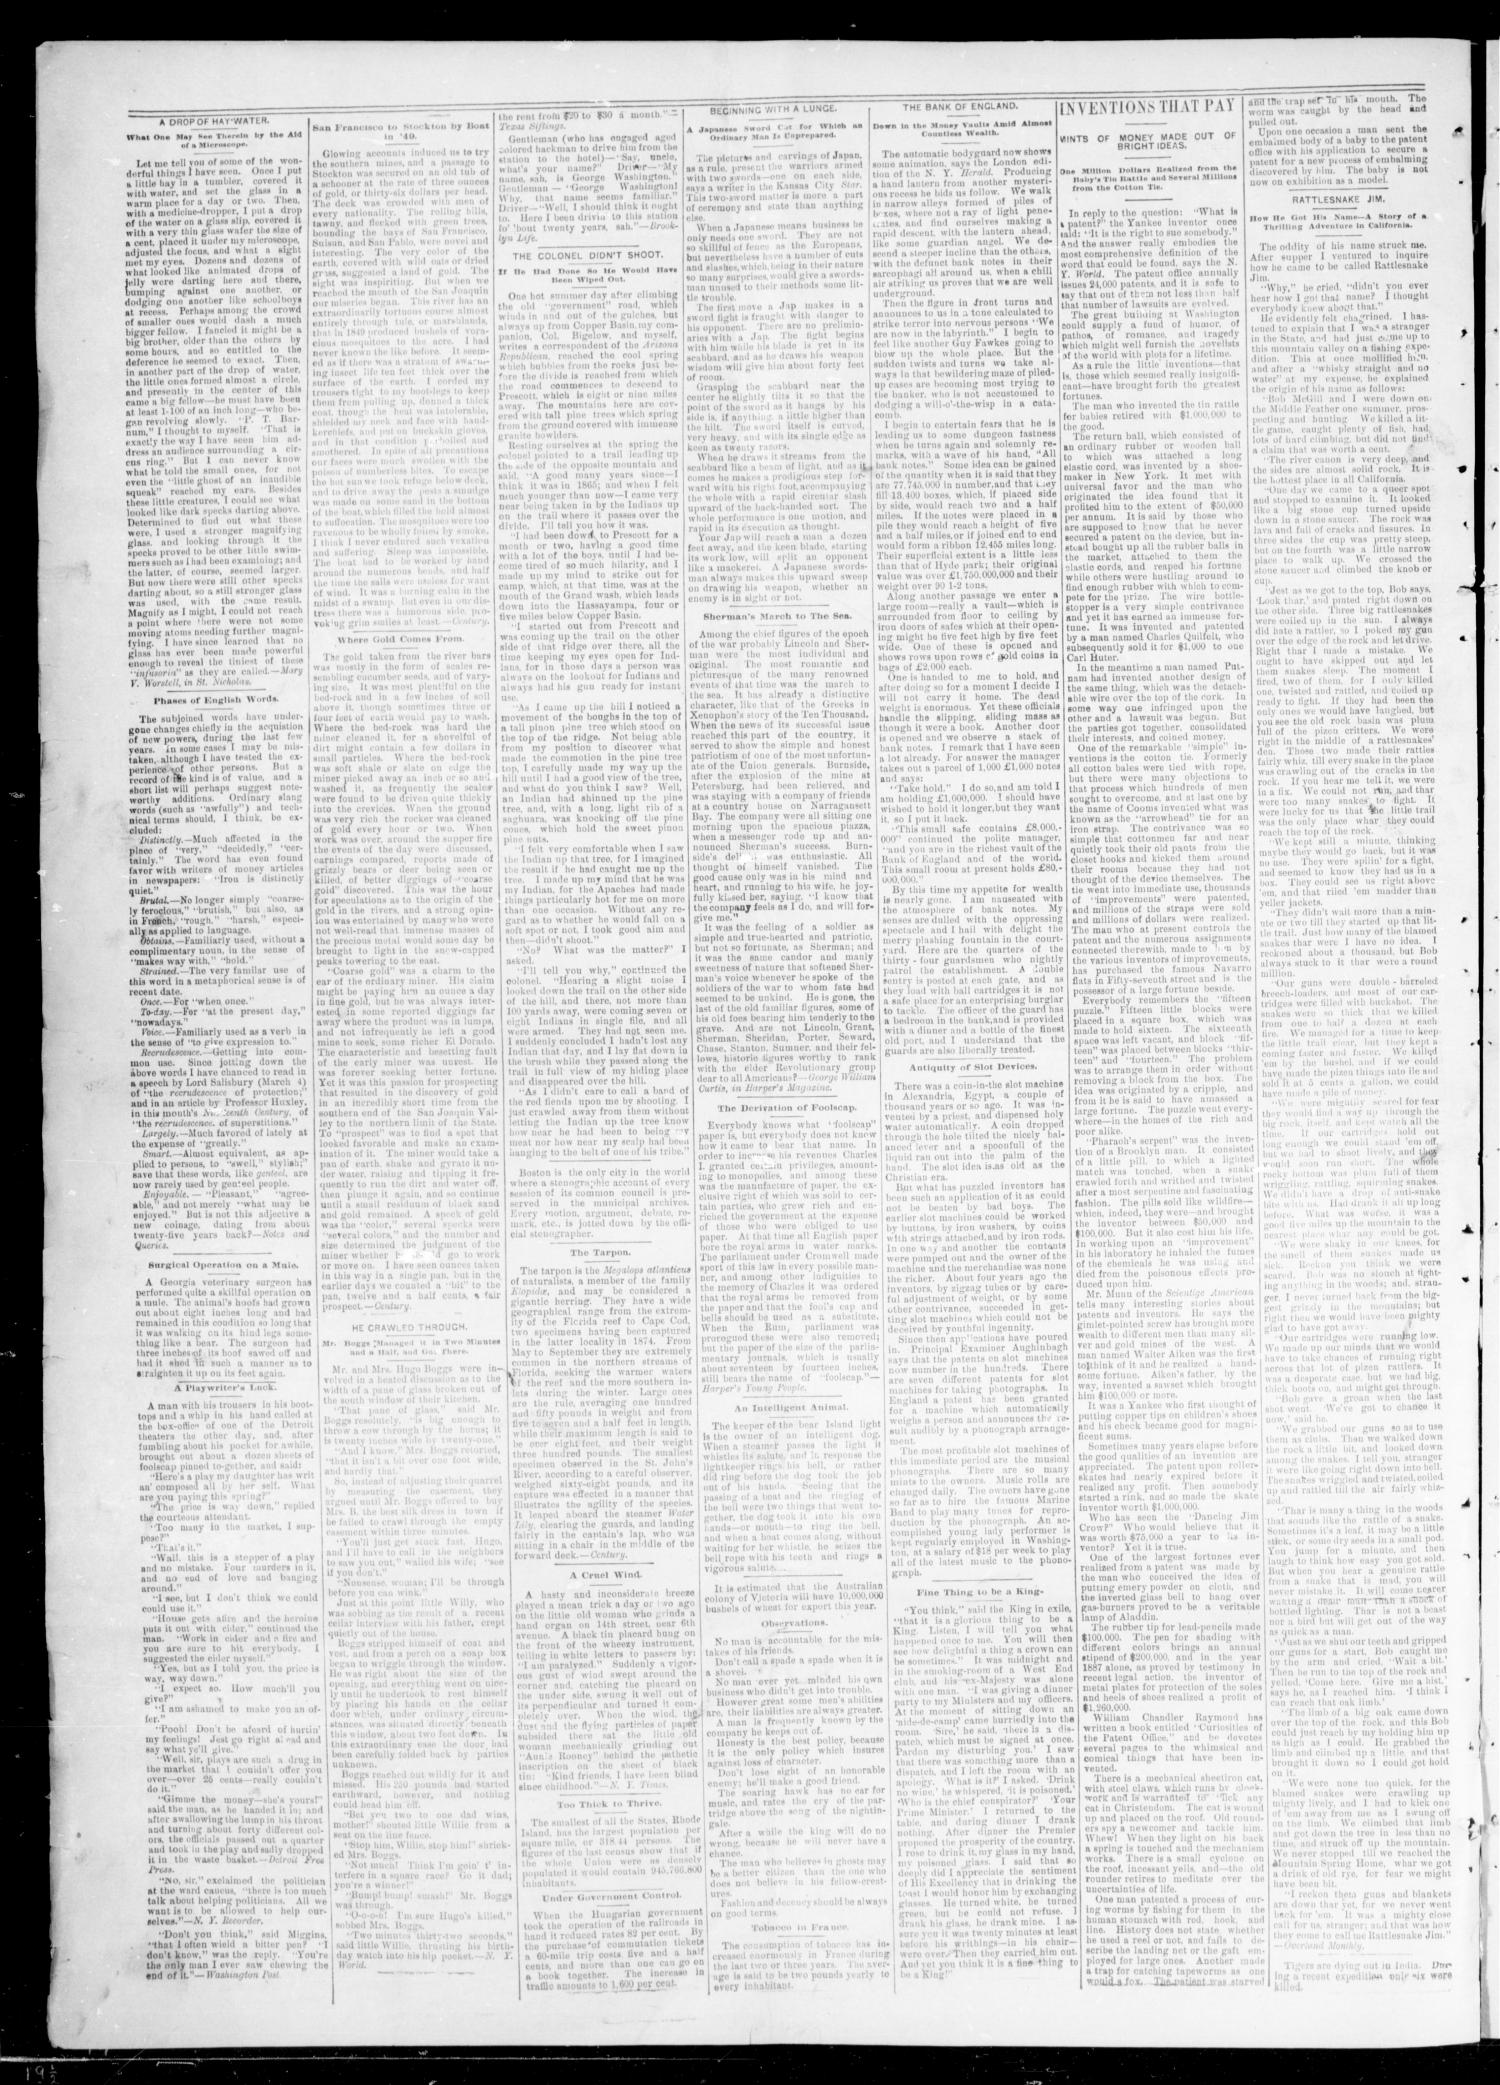 Oklahoma Daily Journal (Oklahoma City, Okla.), Vol. 2, No. 218, Ed. 1 Friday, June 12, 1891                                                                                                      [Sequence #]: 4 of 4